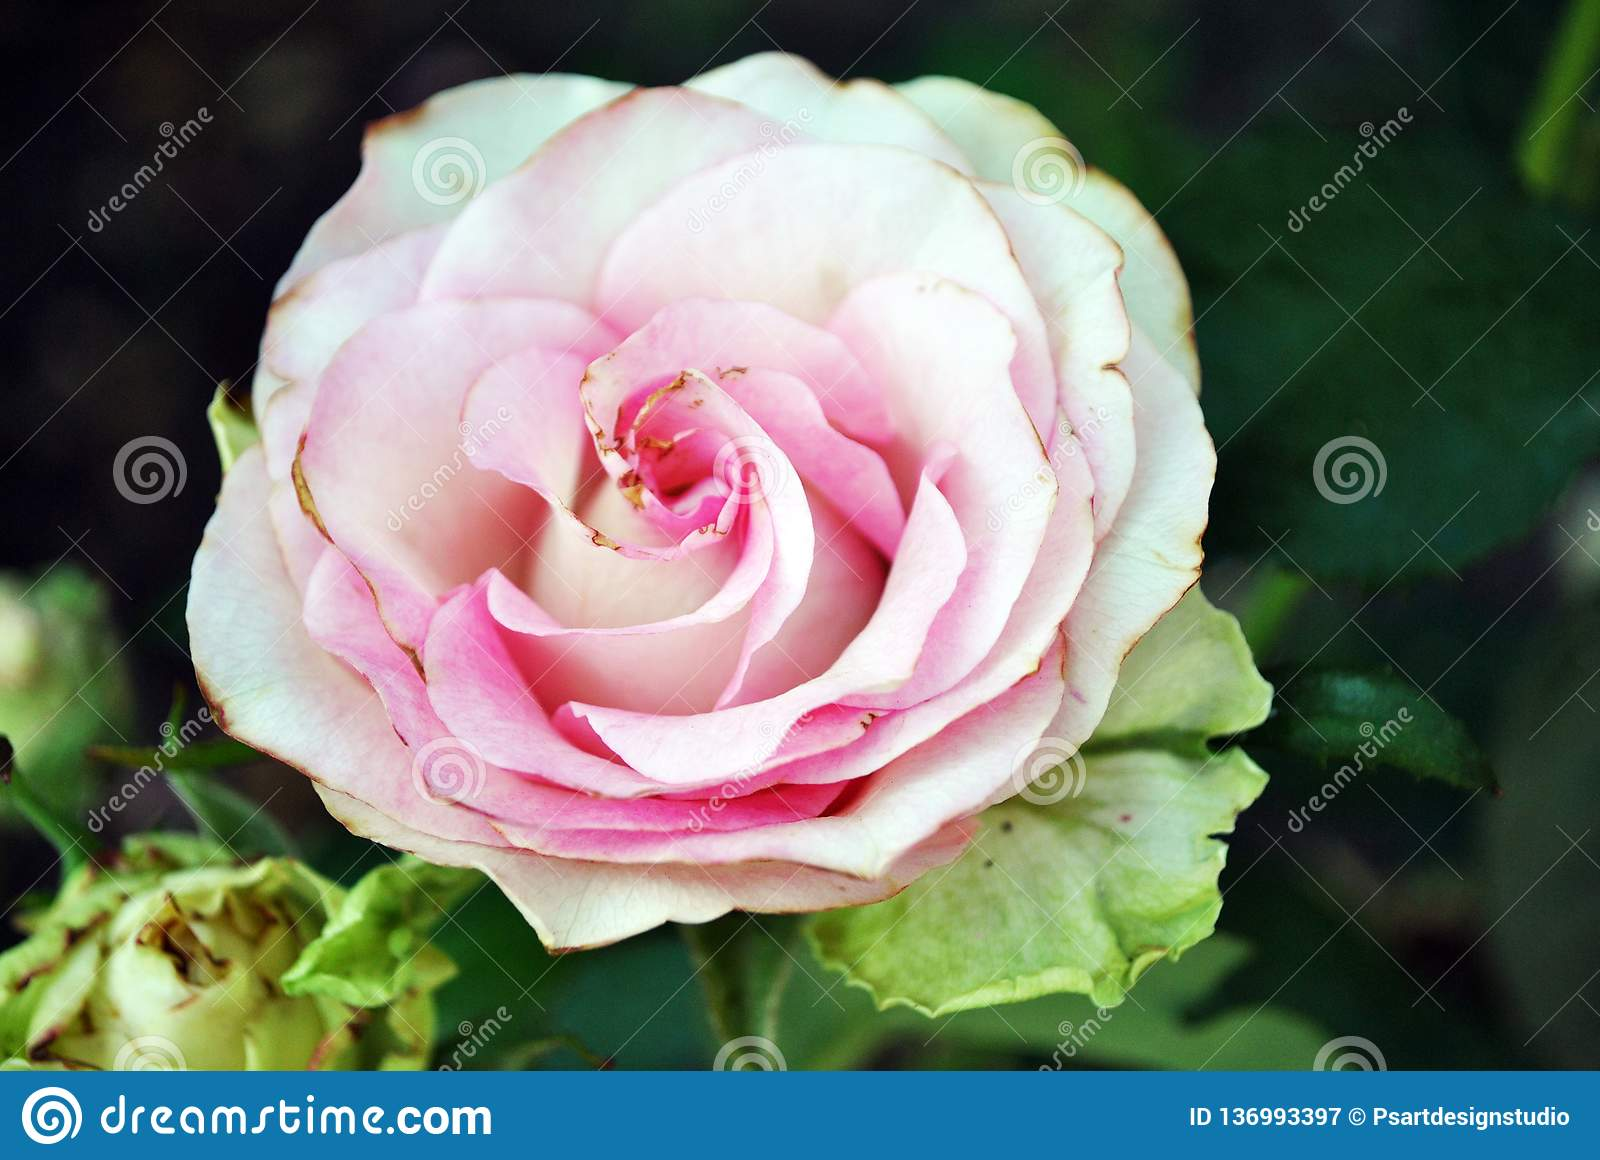 White rose with pink center blooming bud on green bush, petals close up detail, soft blurry bokeh background royalty free stock photography